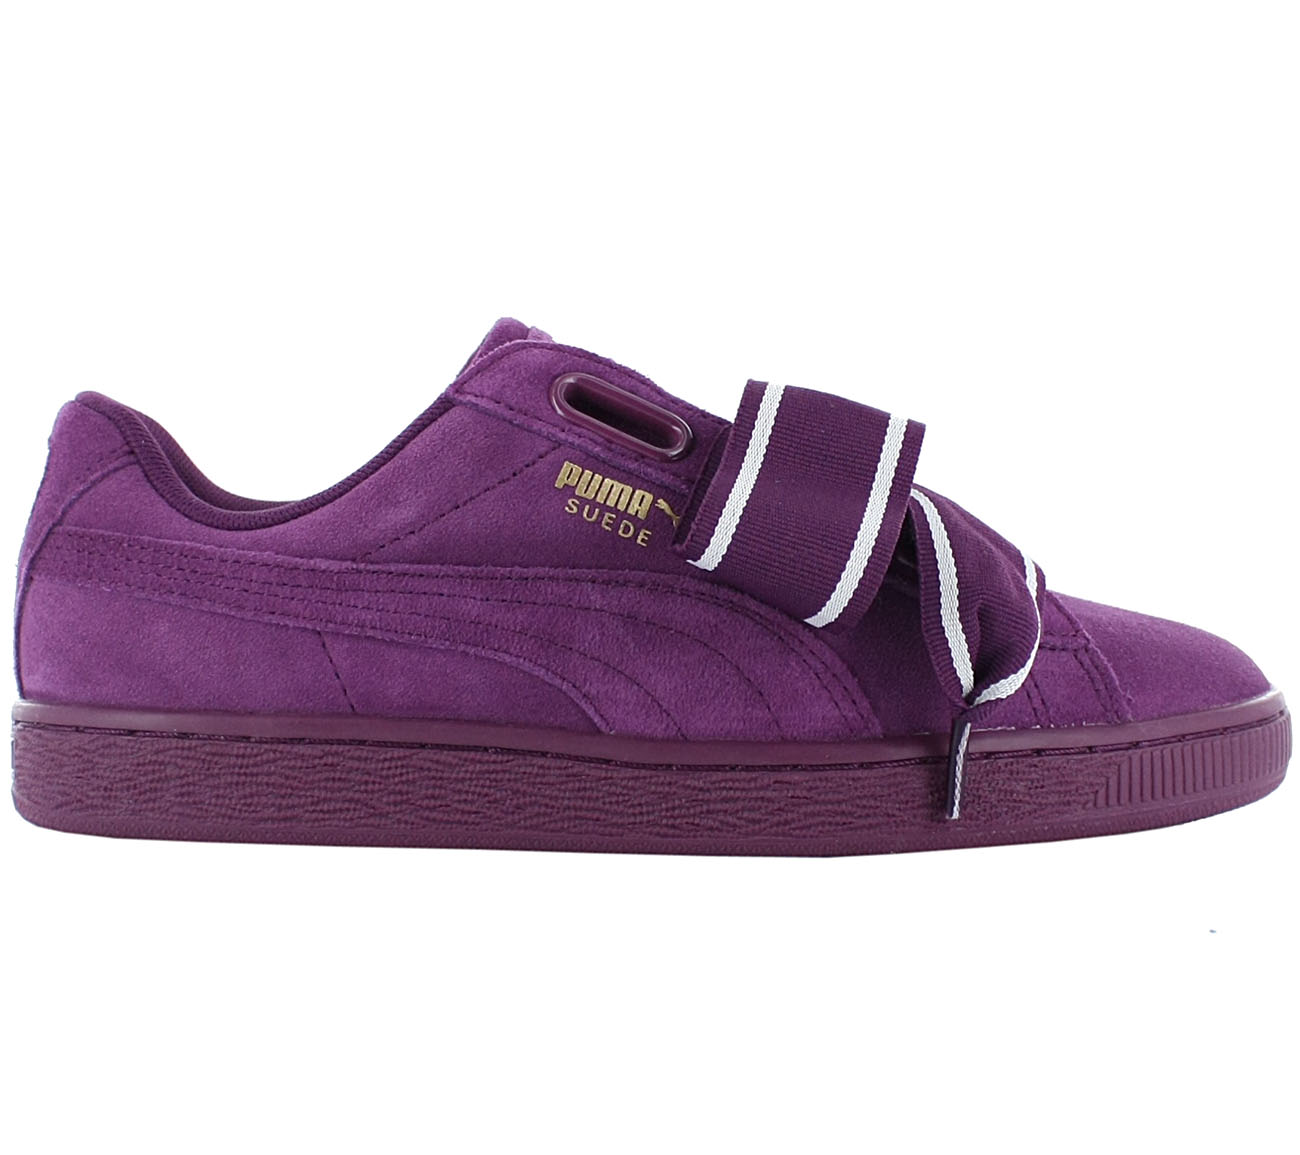 buy popular db31c 20faa Details about Puma Suede Heart Satin 2 Women's Sneaker Shoes Purple Basket  Vikky New 364084-02